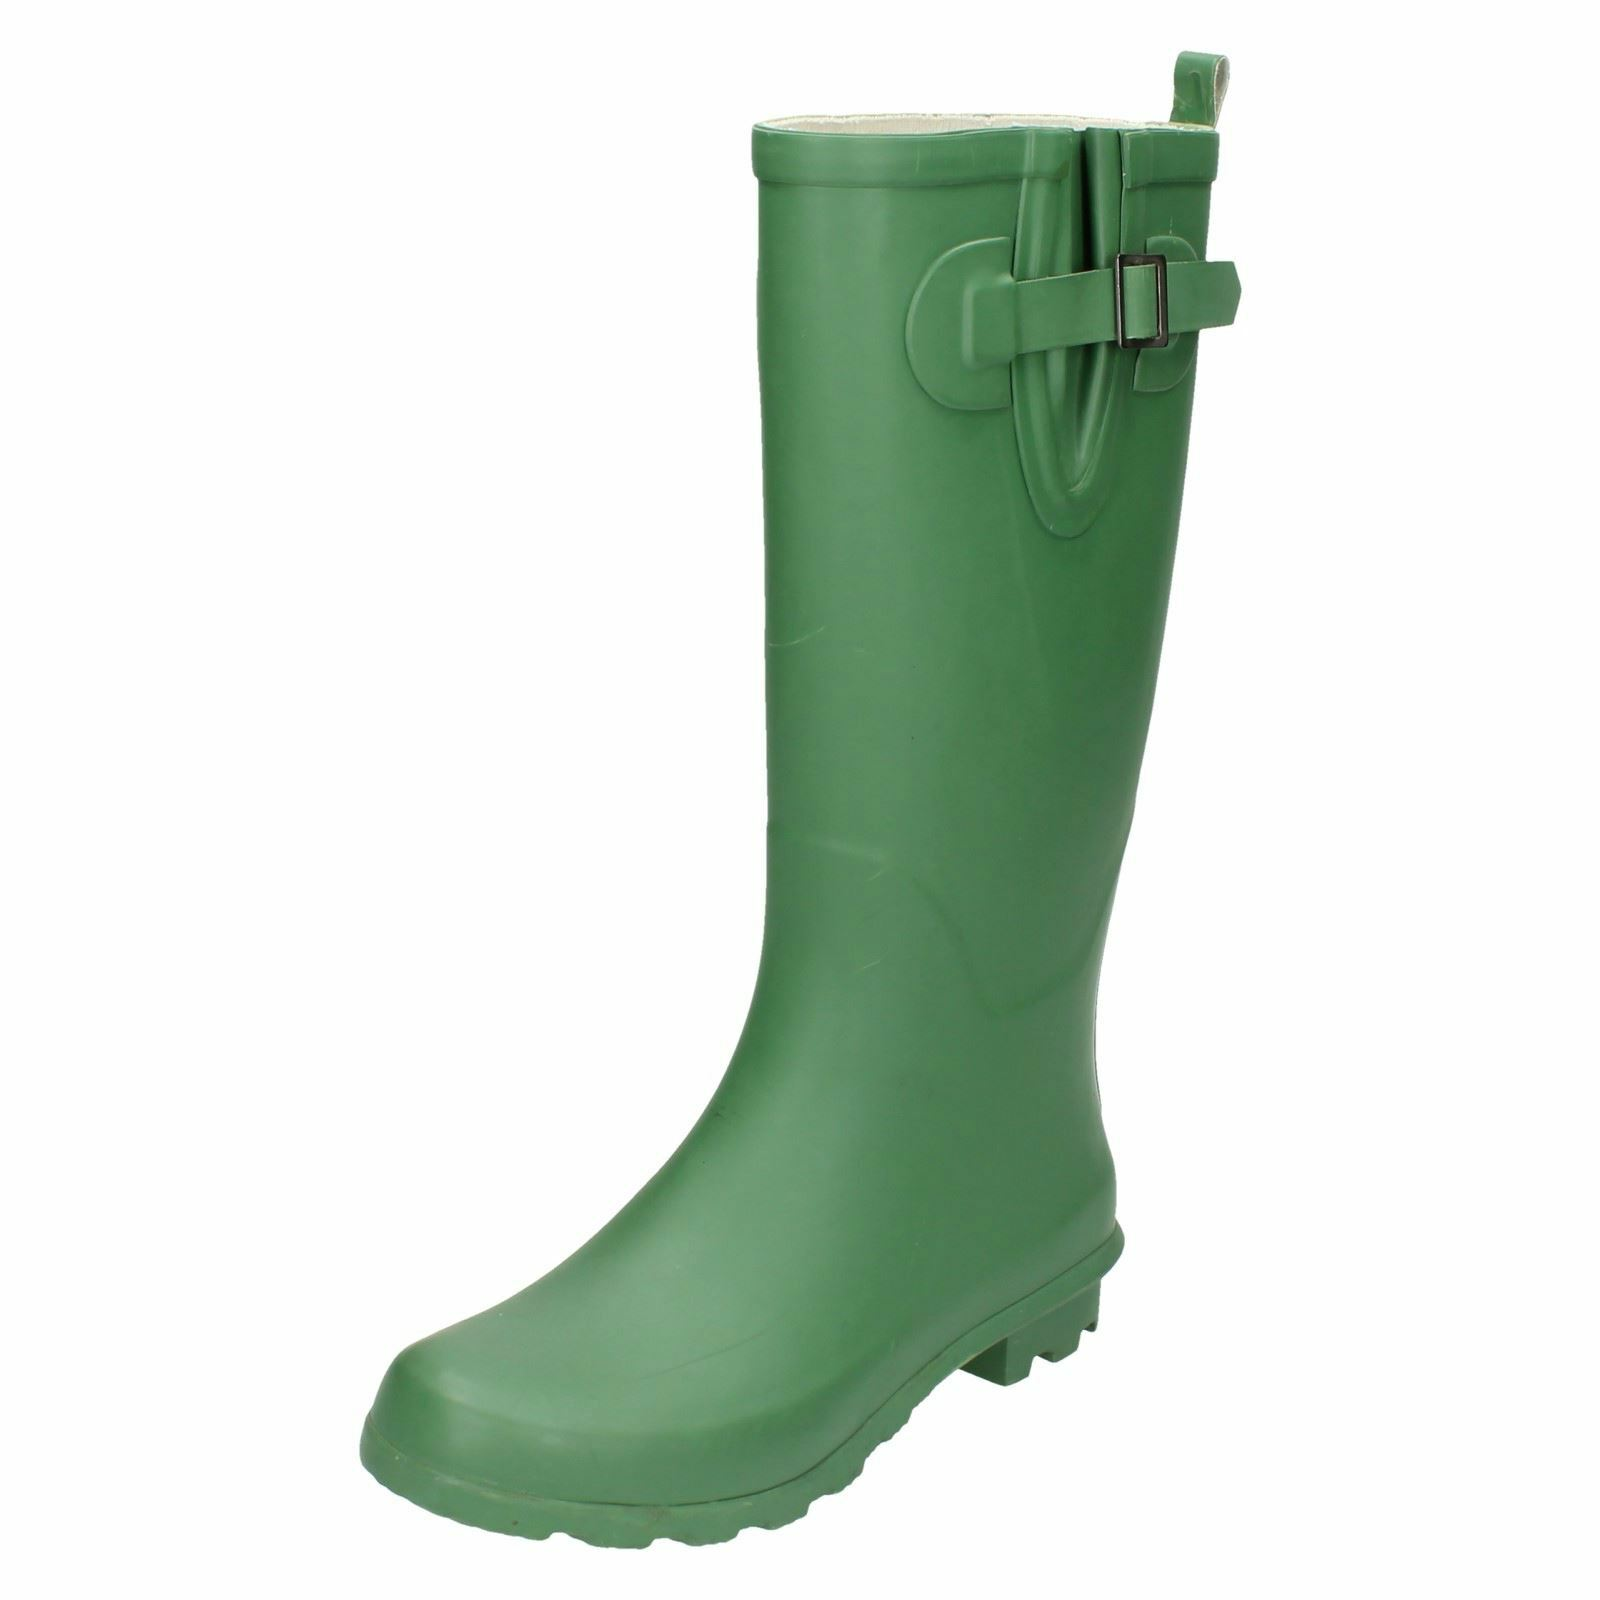 Ladies X1169 green wellingtons by Spot On Retail 19.99